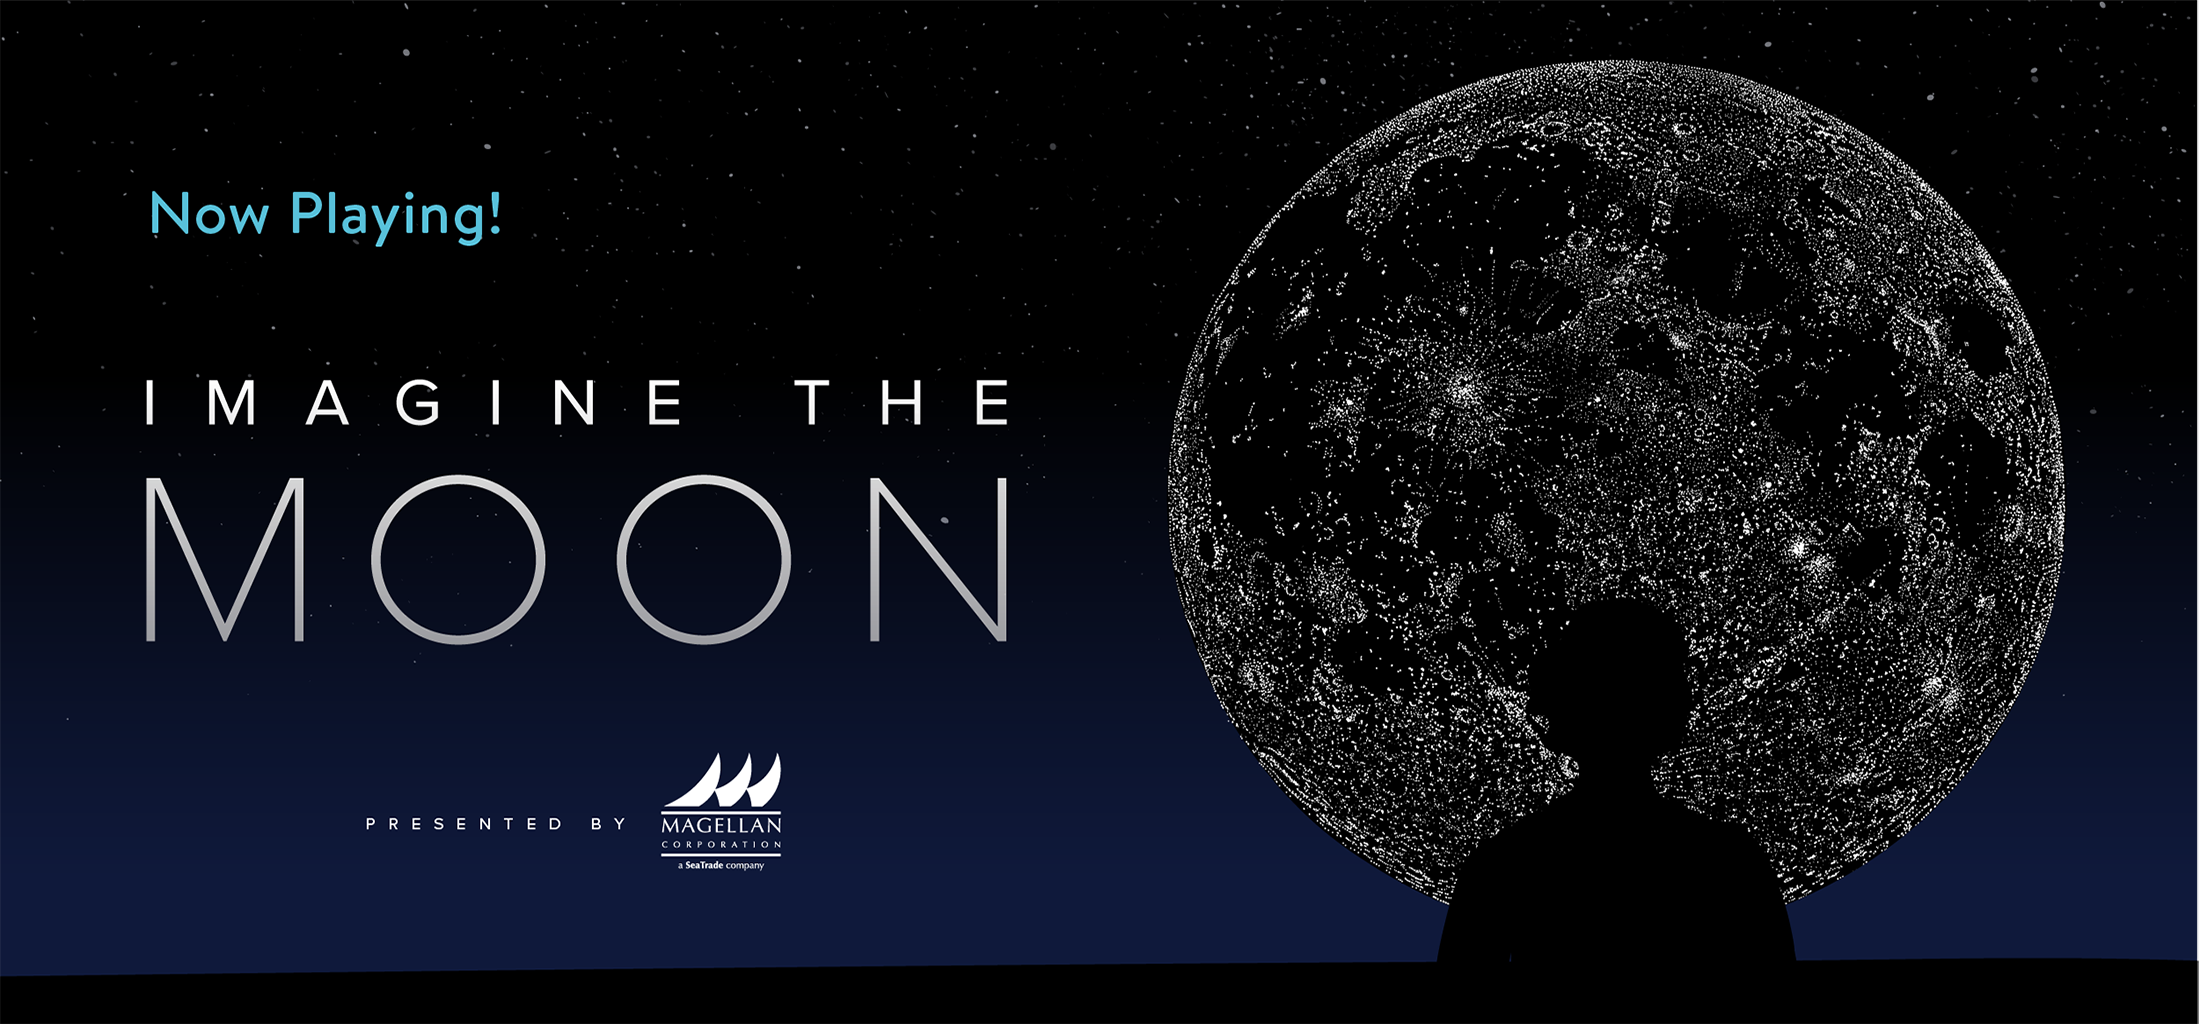 Imagine the Moon - Now Playing at the Adler Planetarium